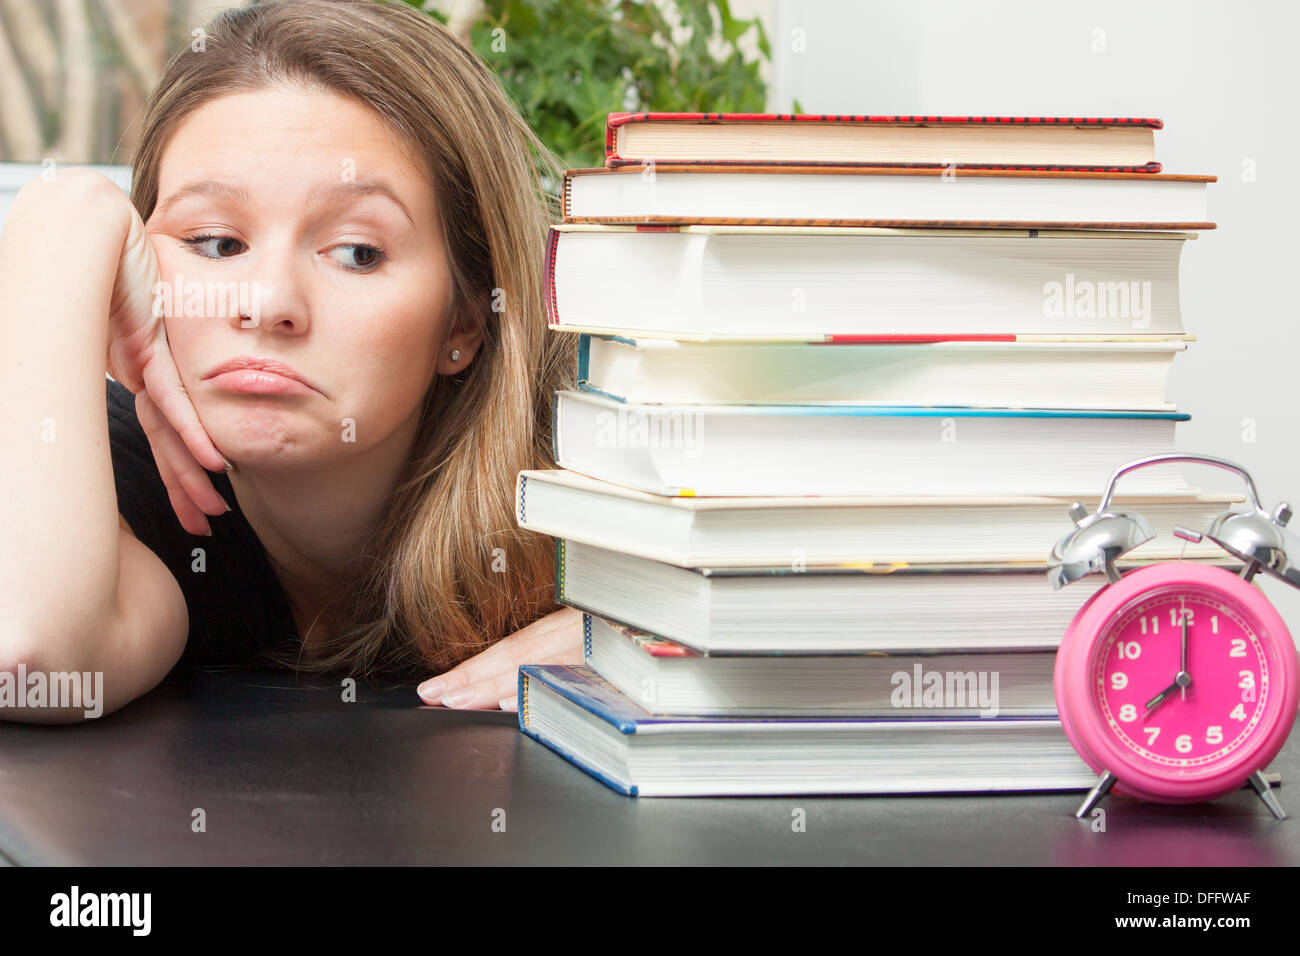 A young woman glances at the large pile of books for exam study a young woman glances at the large pile of books for exam study time ticks by reminding her of the limited time to prepare thecheapjerseys Images